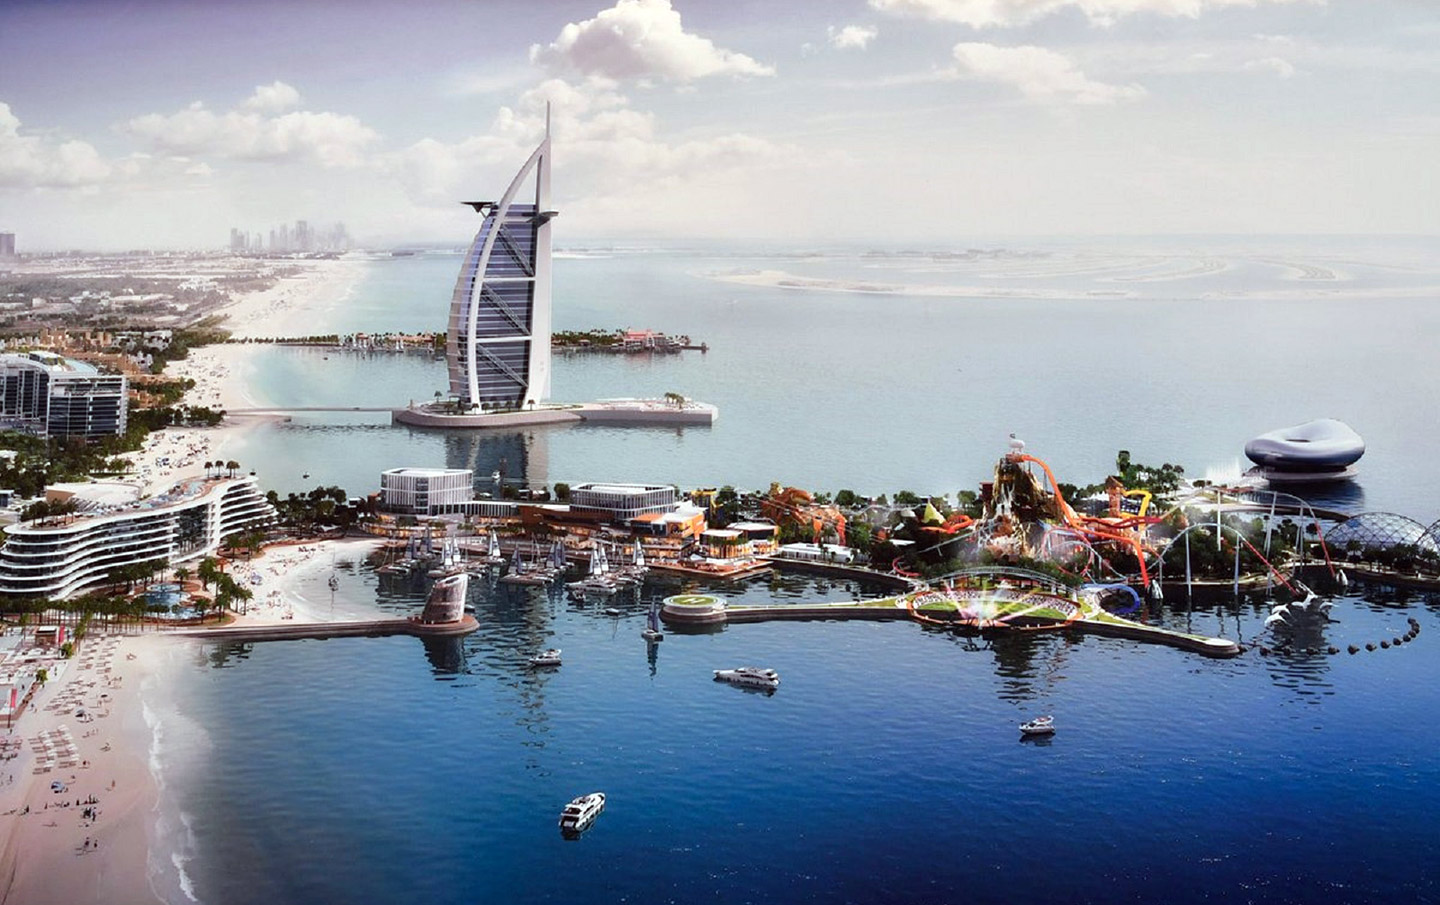 Rendering of Marsa Al Arab